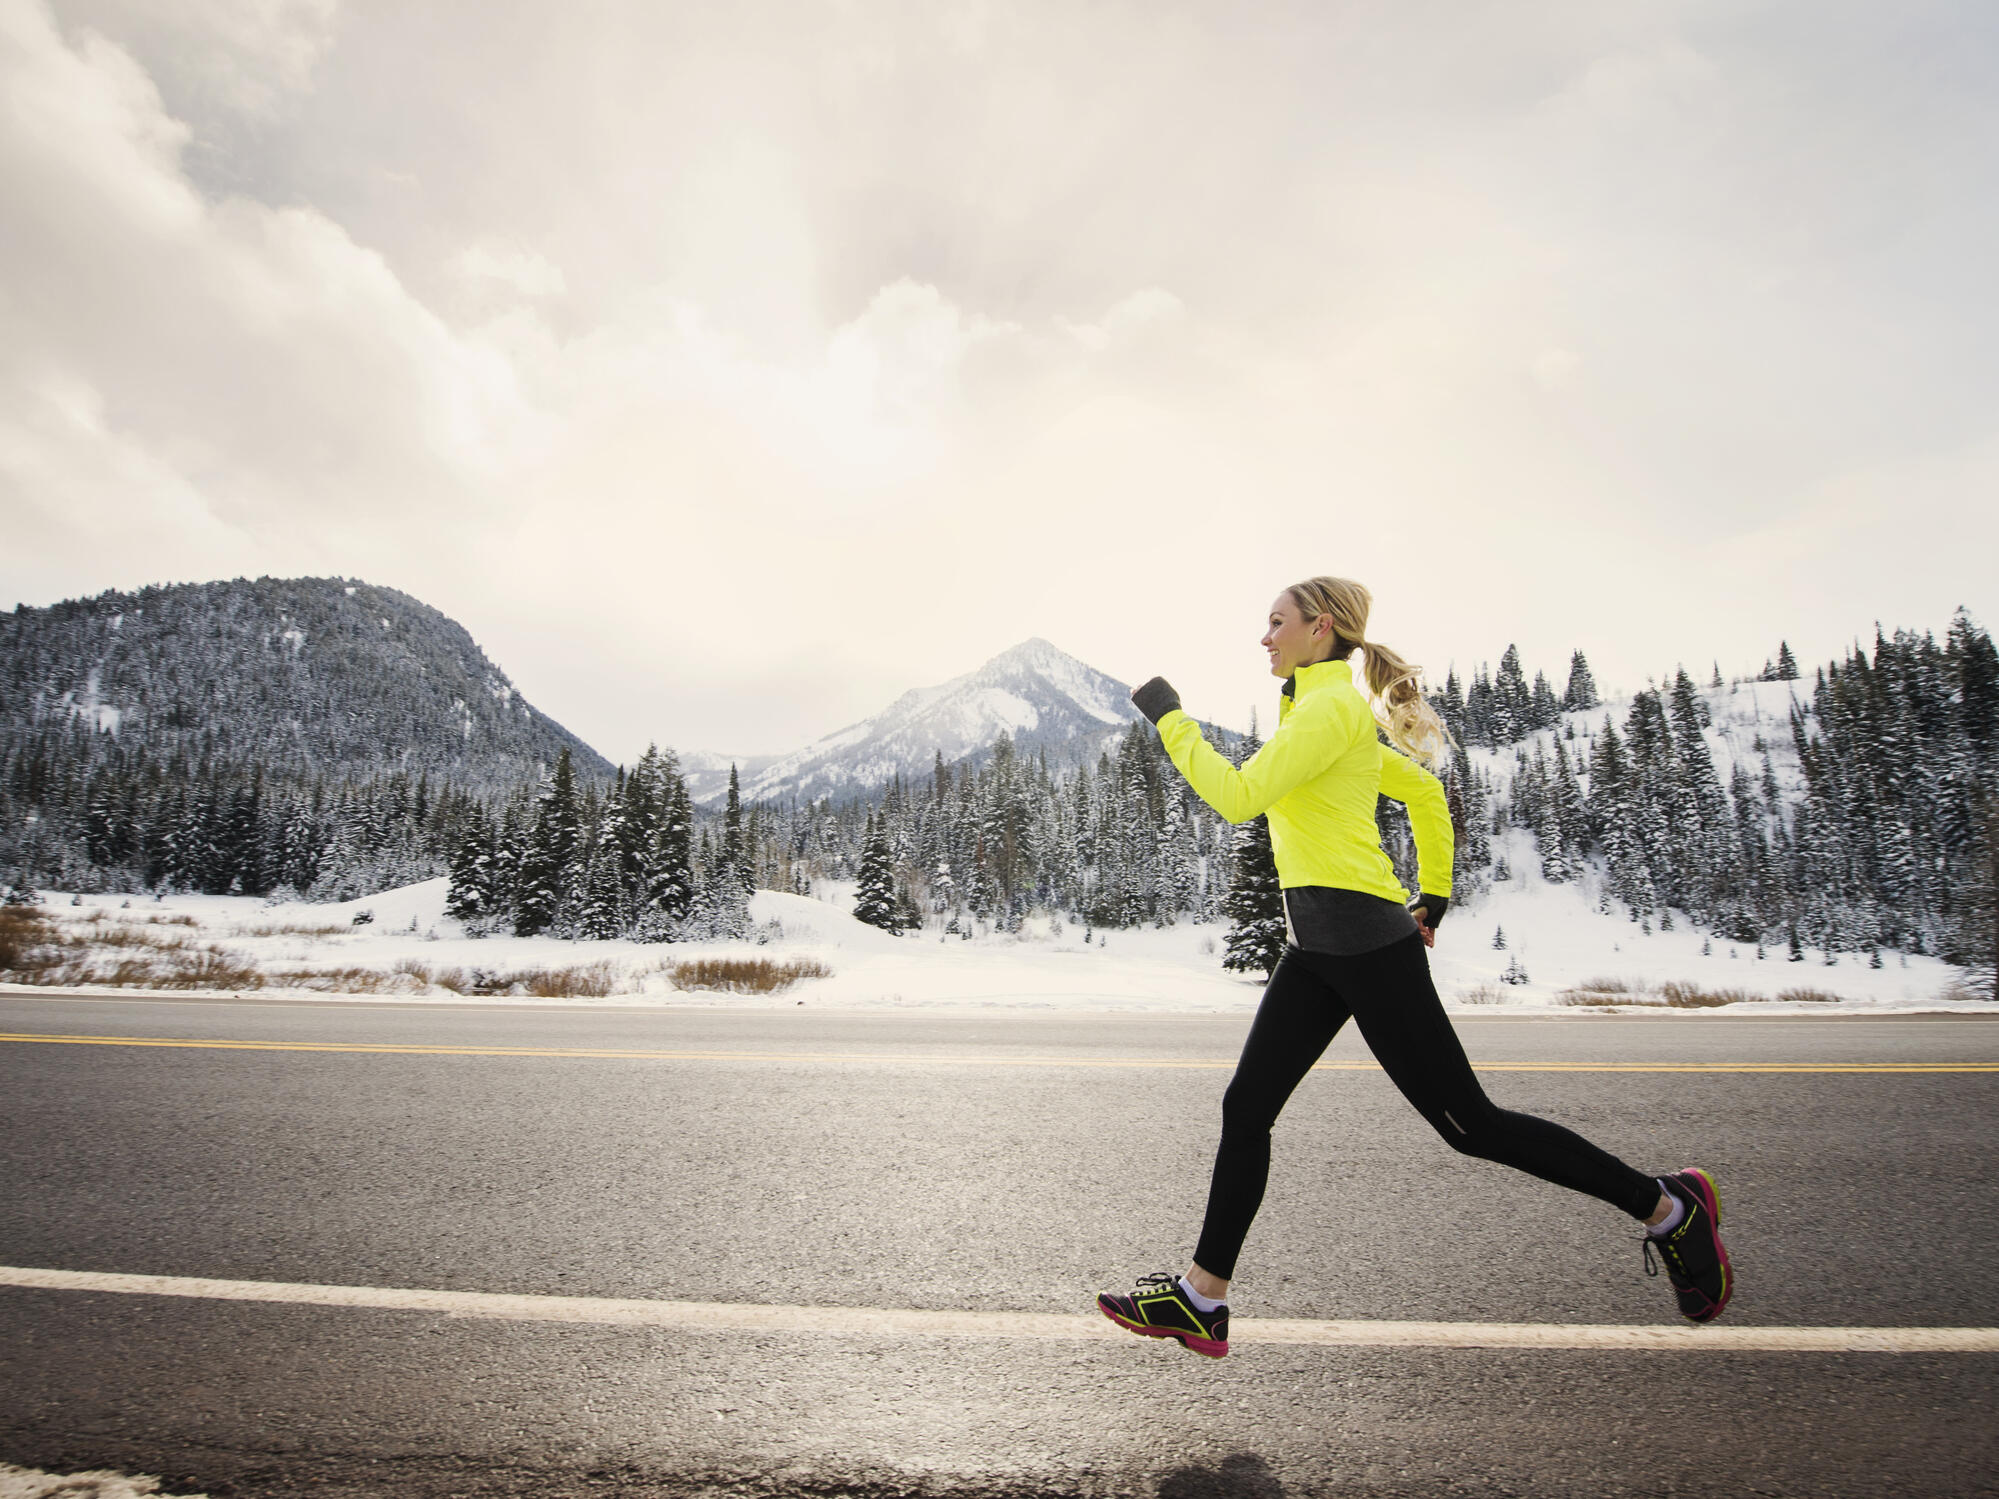 Blonde-haired woman in a neon jacket running outdoors in snowy weather.